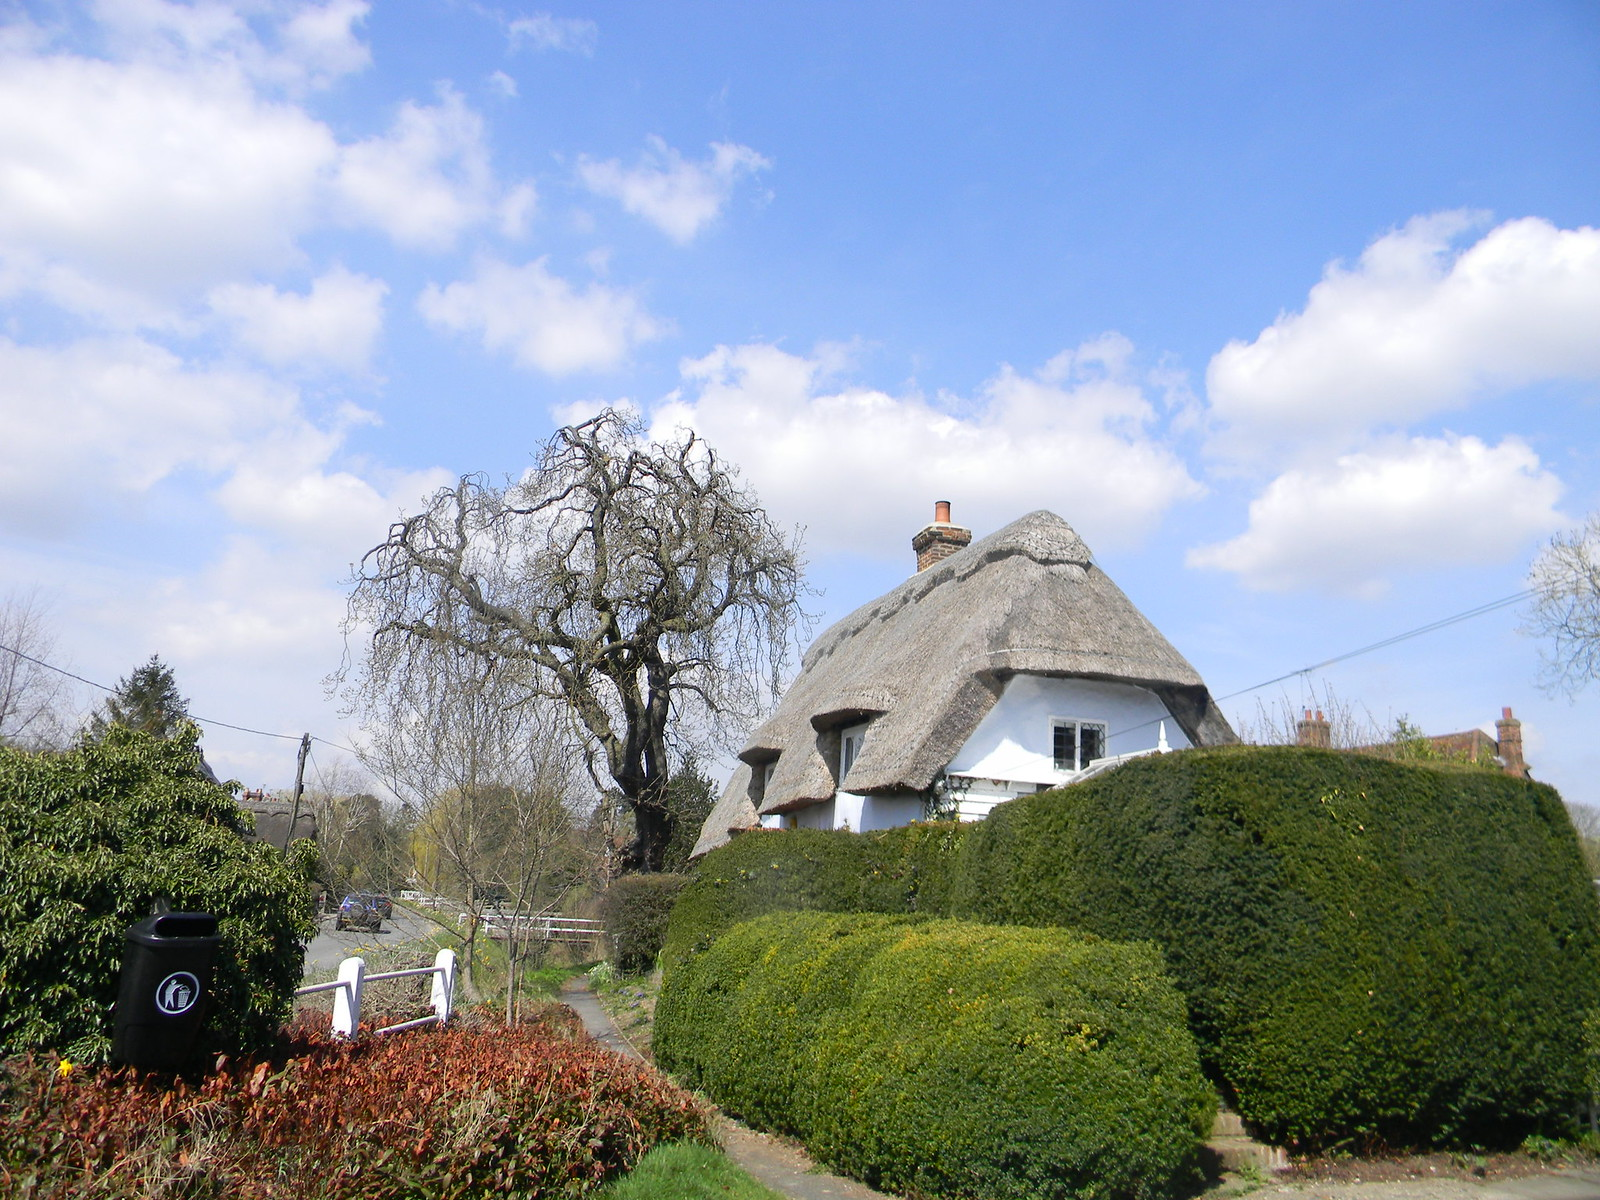 Thatched cottage Arkesden Wendens Ambo Circular